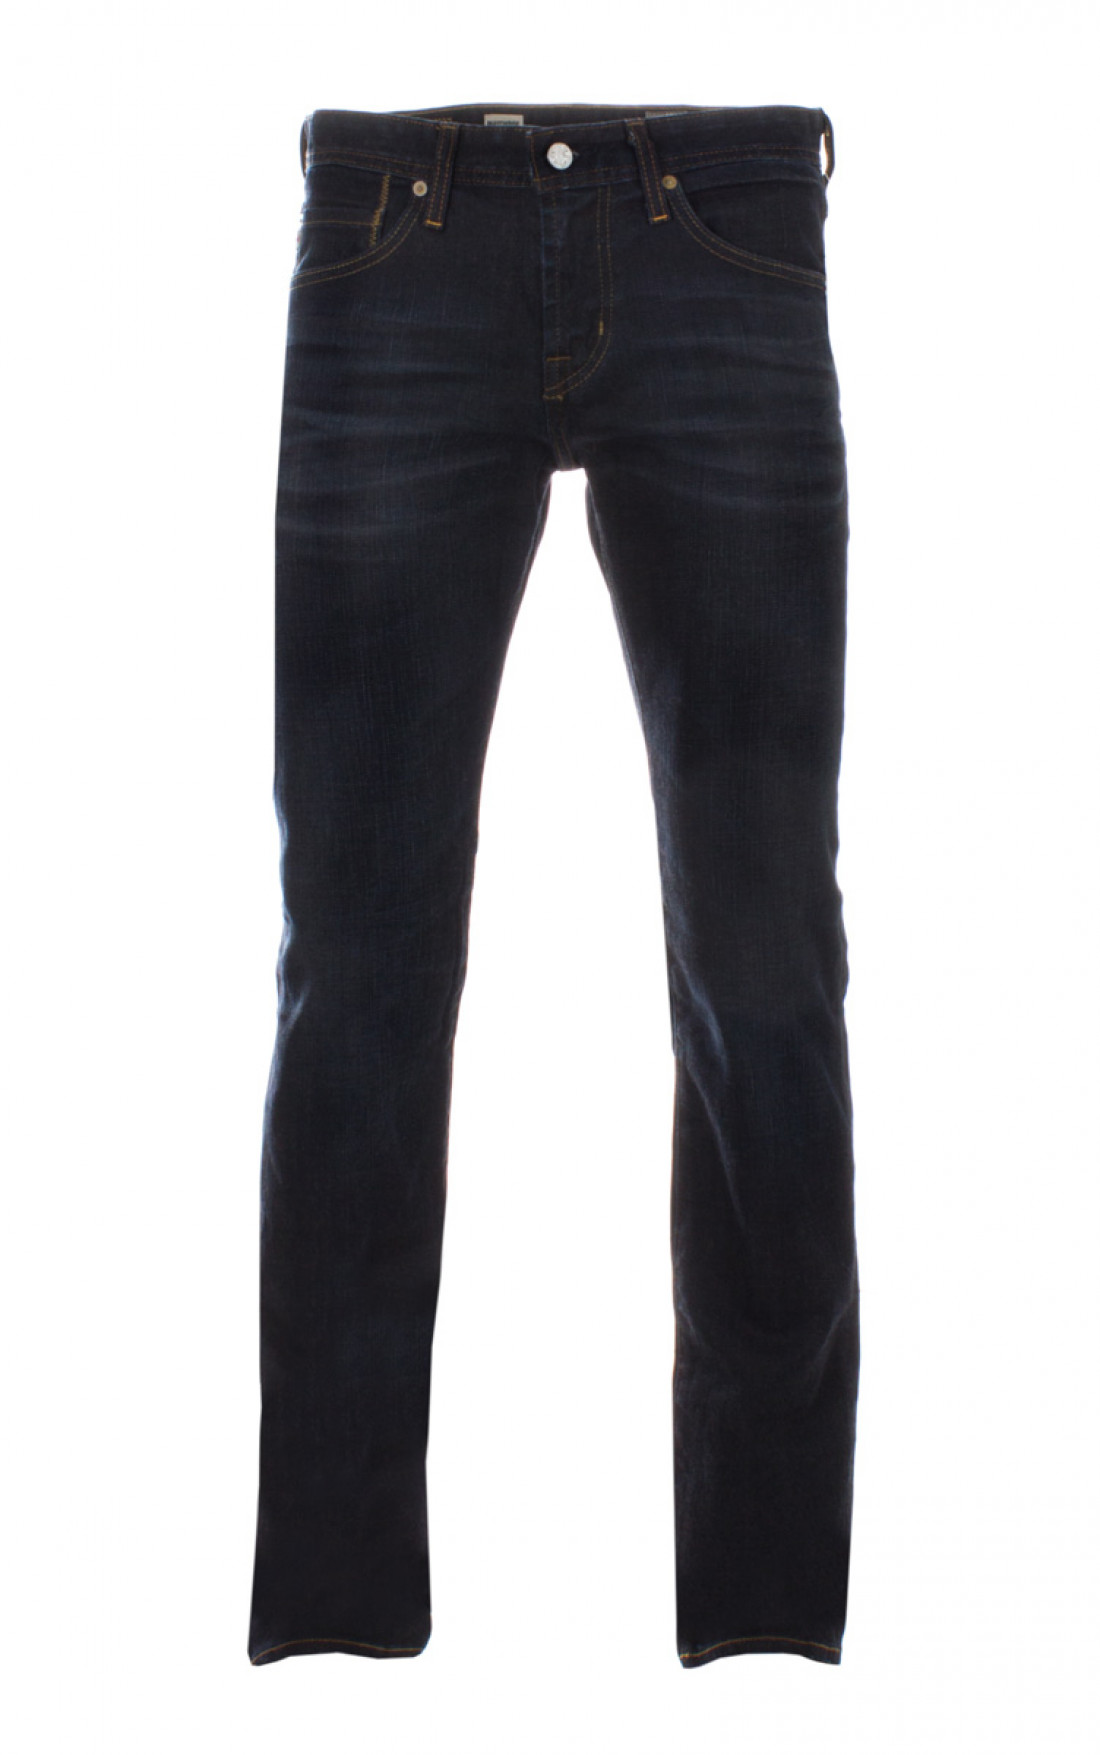 Adriano Goldschmied - The Matchbox Slim Straight Dark Blue (1131CSD)